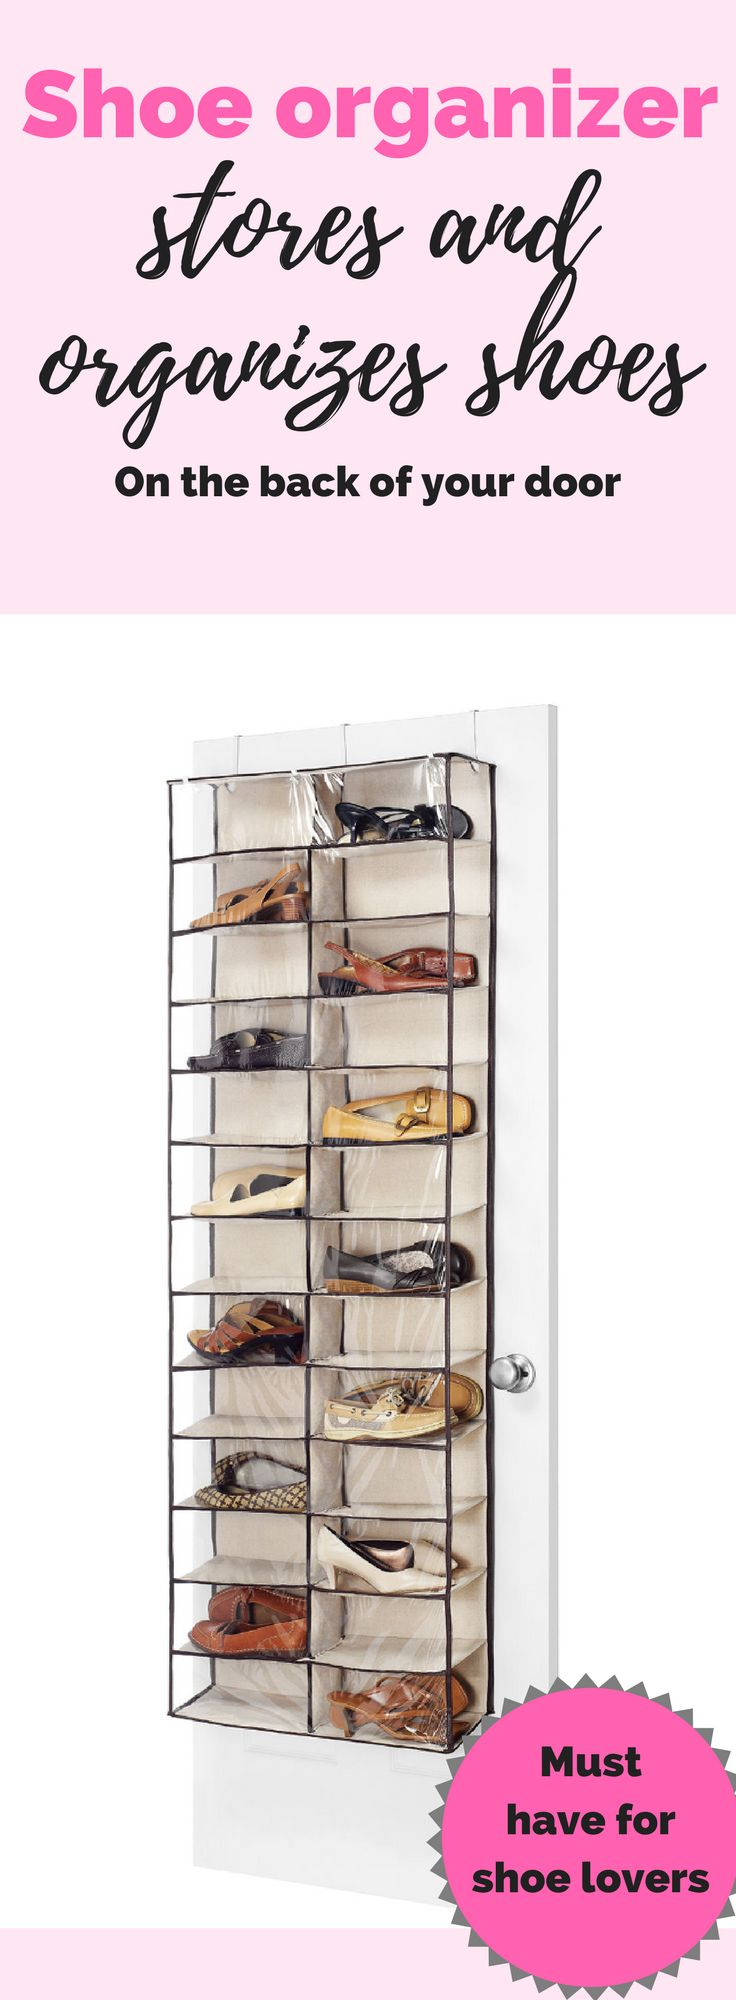 Organize your shoes easily and cheap with an shoe organizer hanging on the door | shoe organizer | shoe storage | shoe storage idea | (Affiliatelink - I will earn a small commission if you purchase through this link)